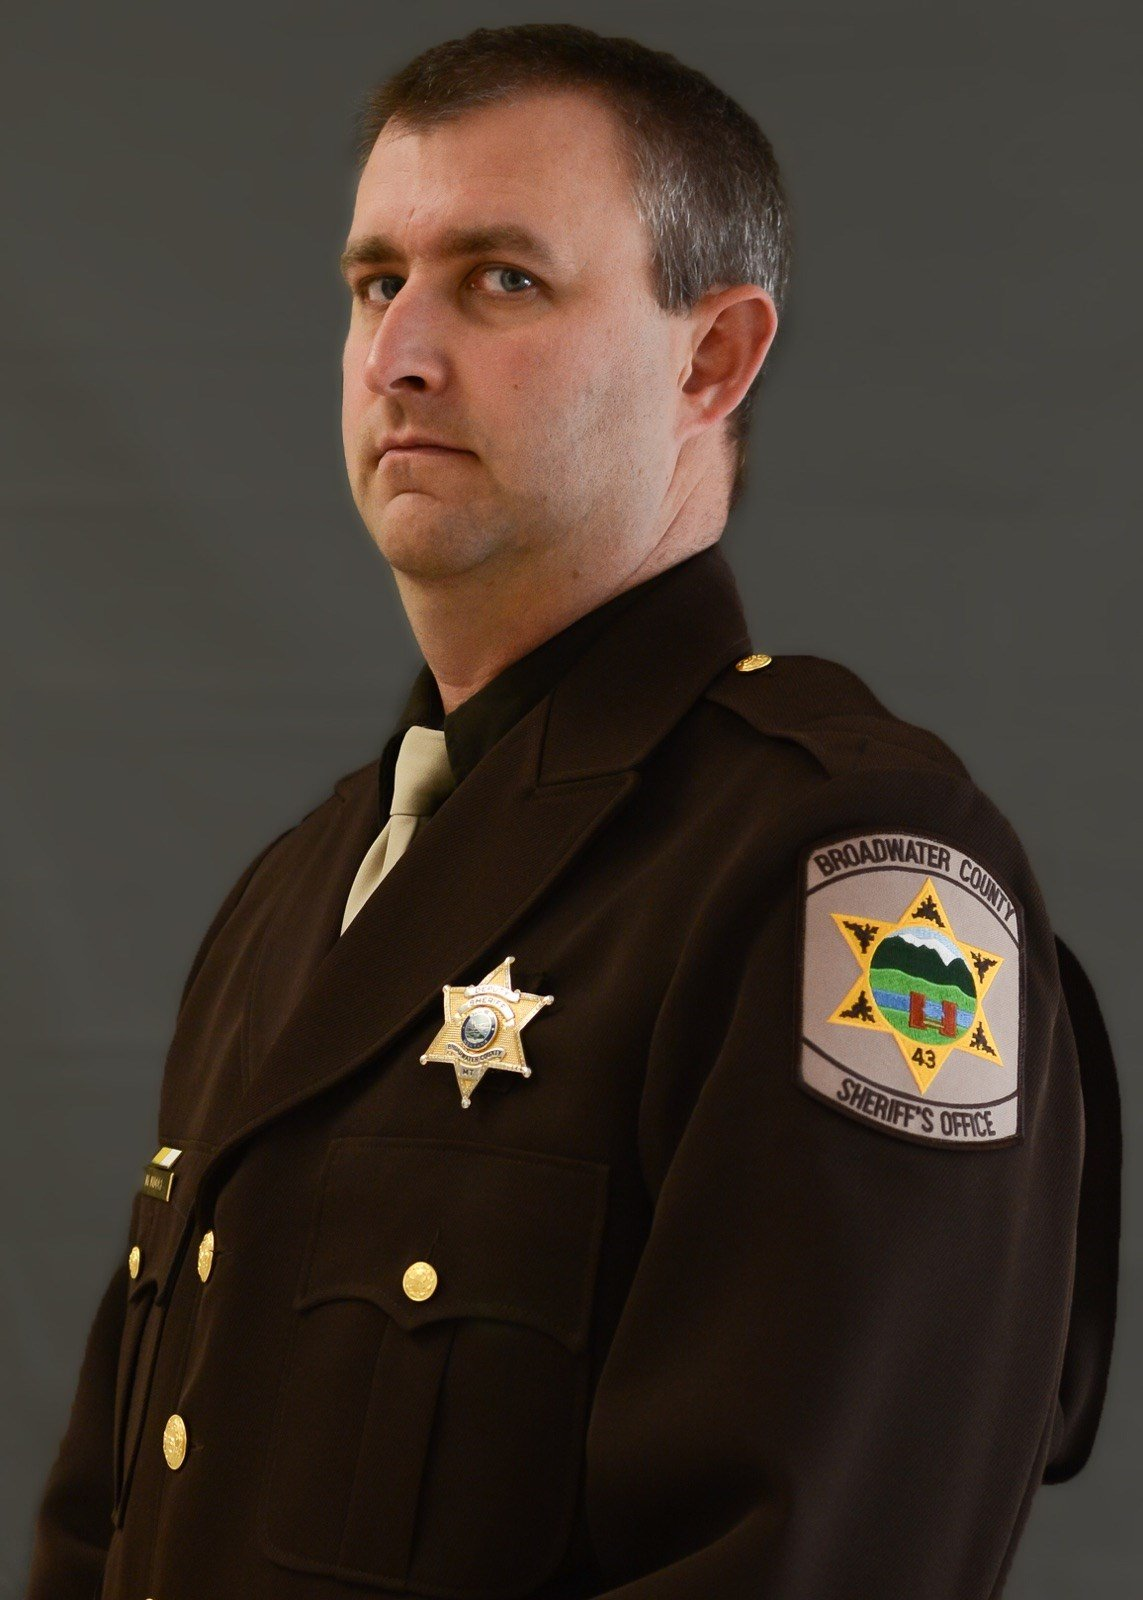 Deputy Mason Moore was a father of three children.